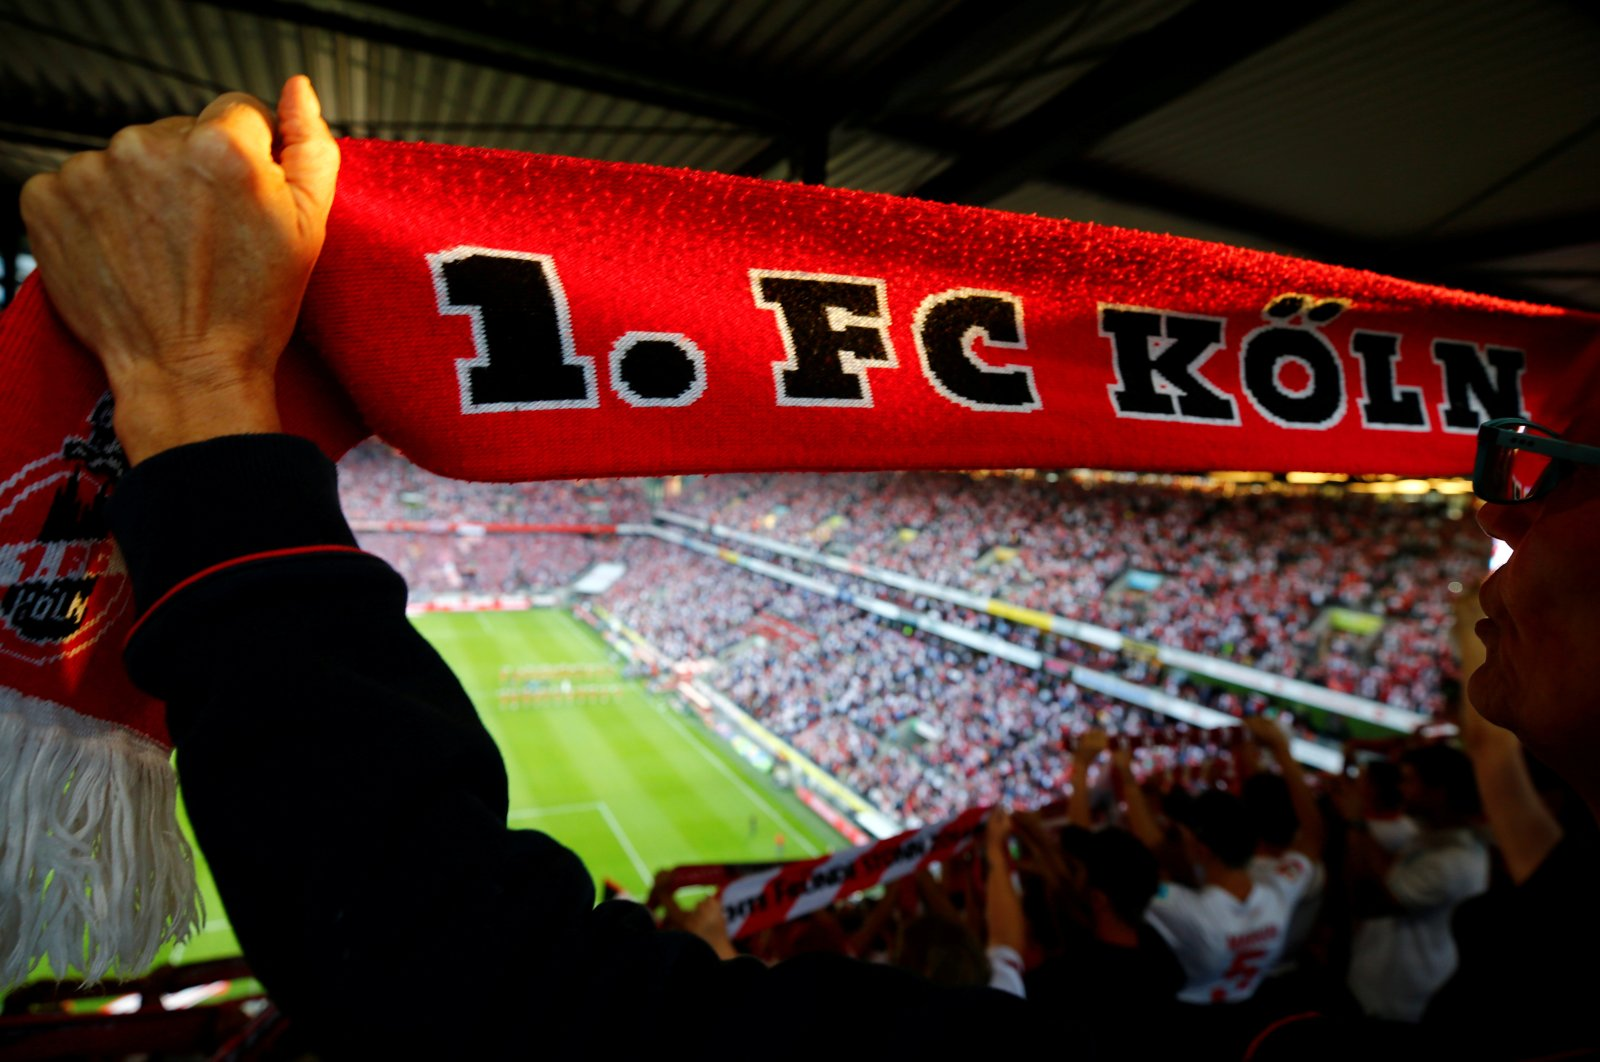 An FC Cologne fan displays her fan scarf at RheinEnergie stadium, in Cologne, Germany, Monday, Aug.13, 2018. (Reuters Photo)